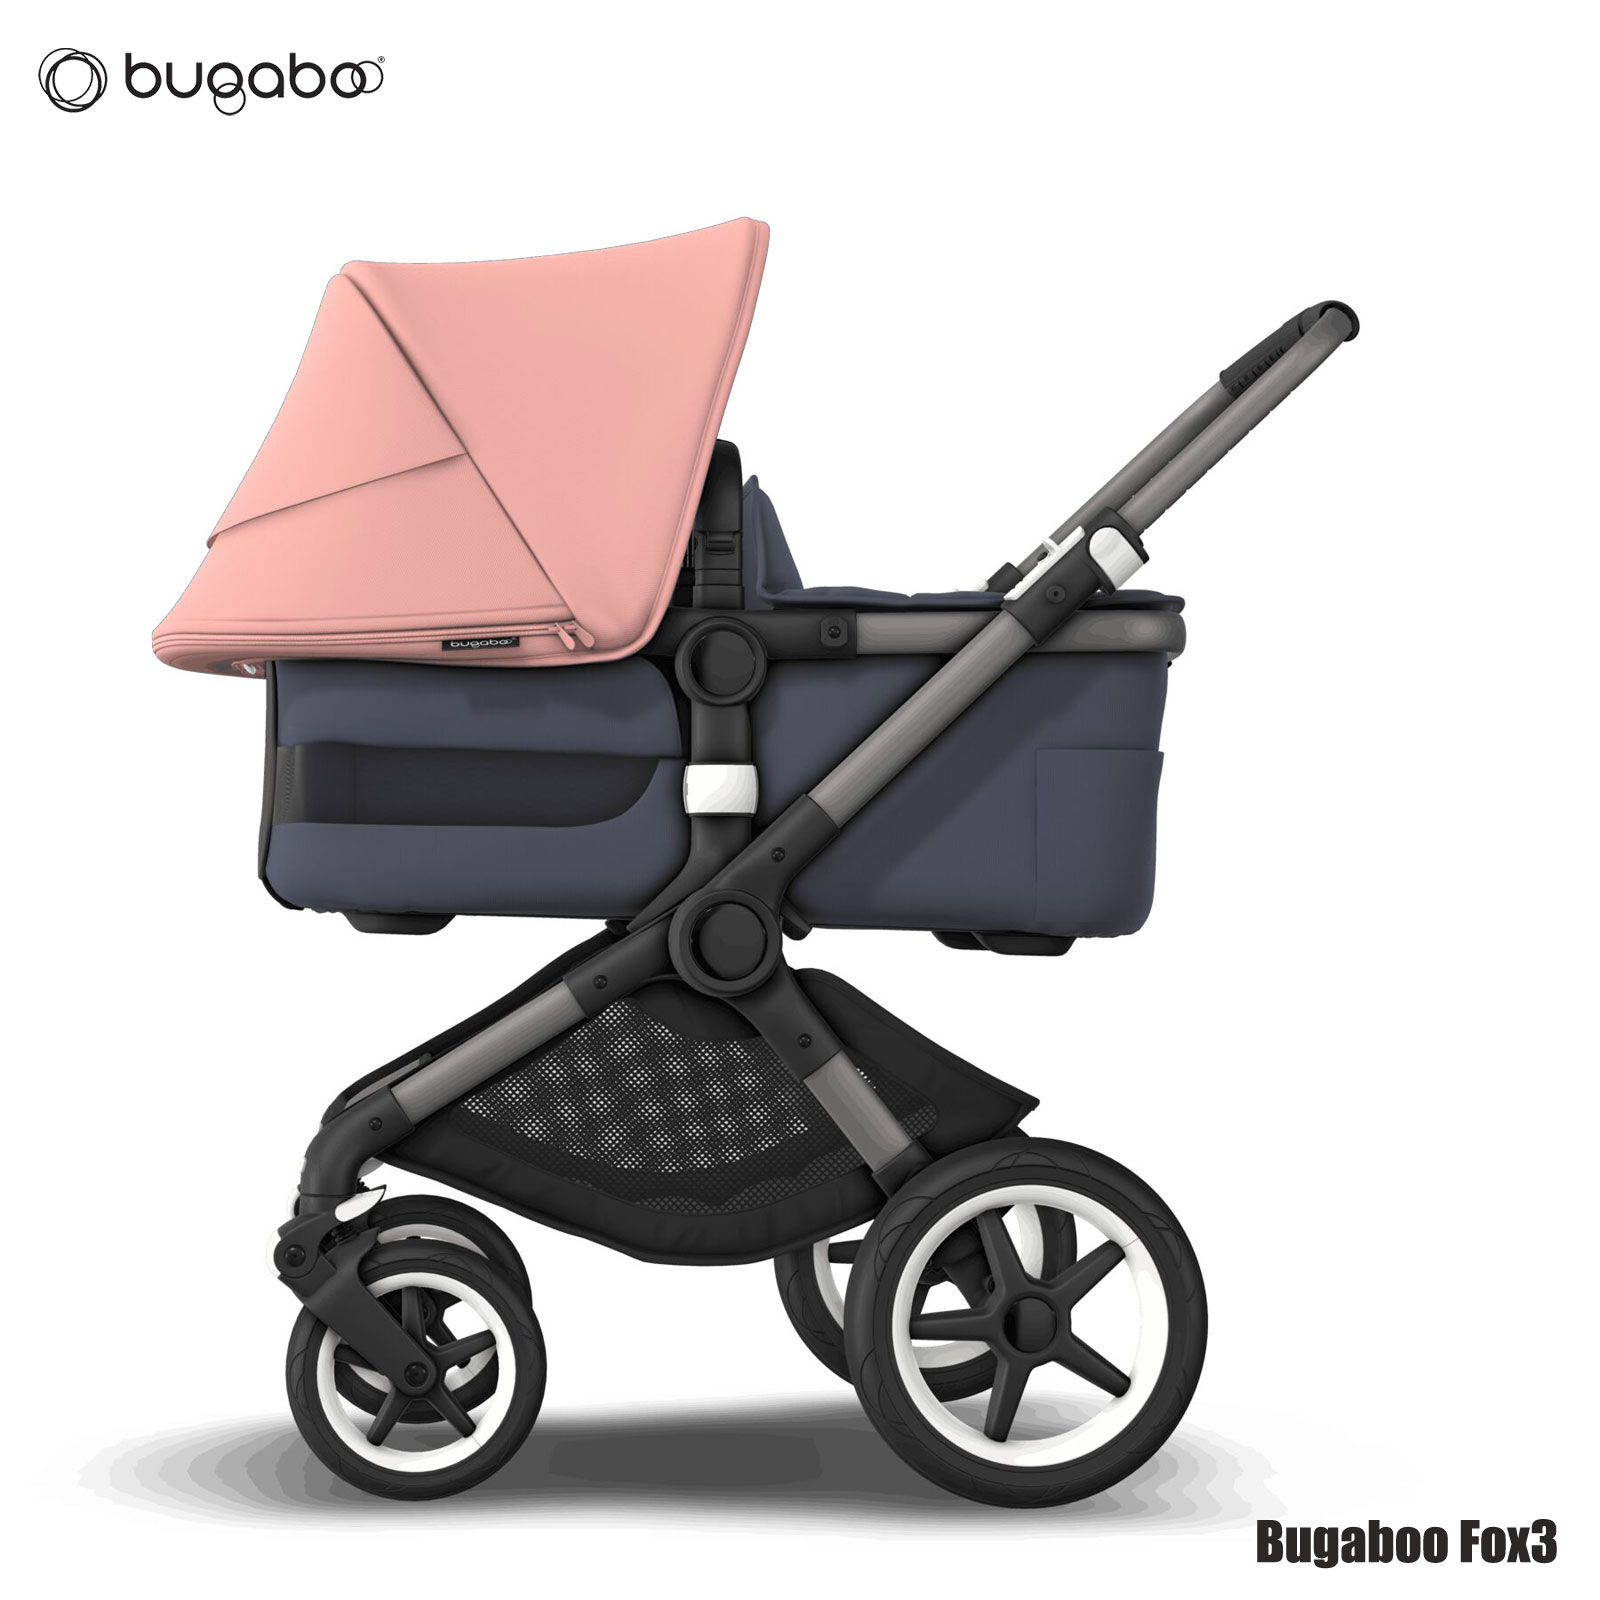 Bugaboo_Fox3_Graphite_Stormy_blue_Morning_pink_CarryCot_MBN.jpg